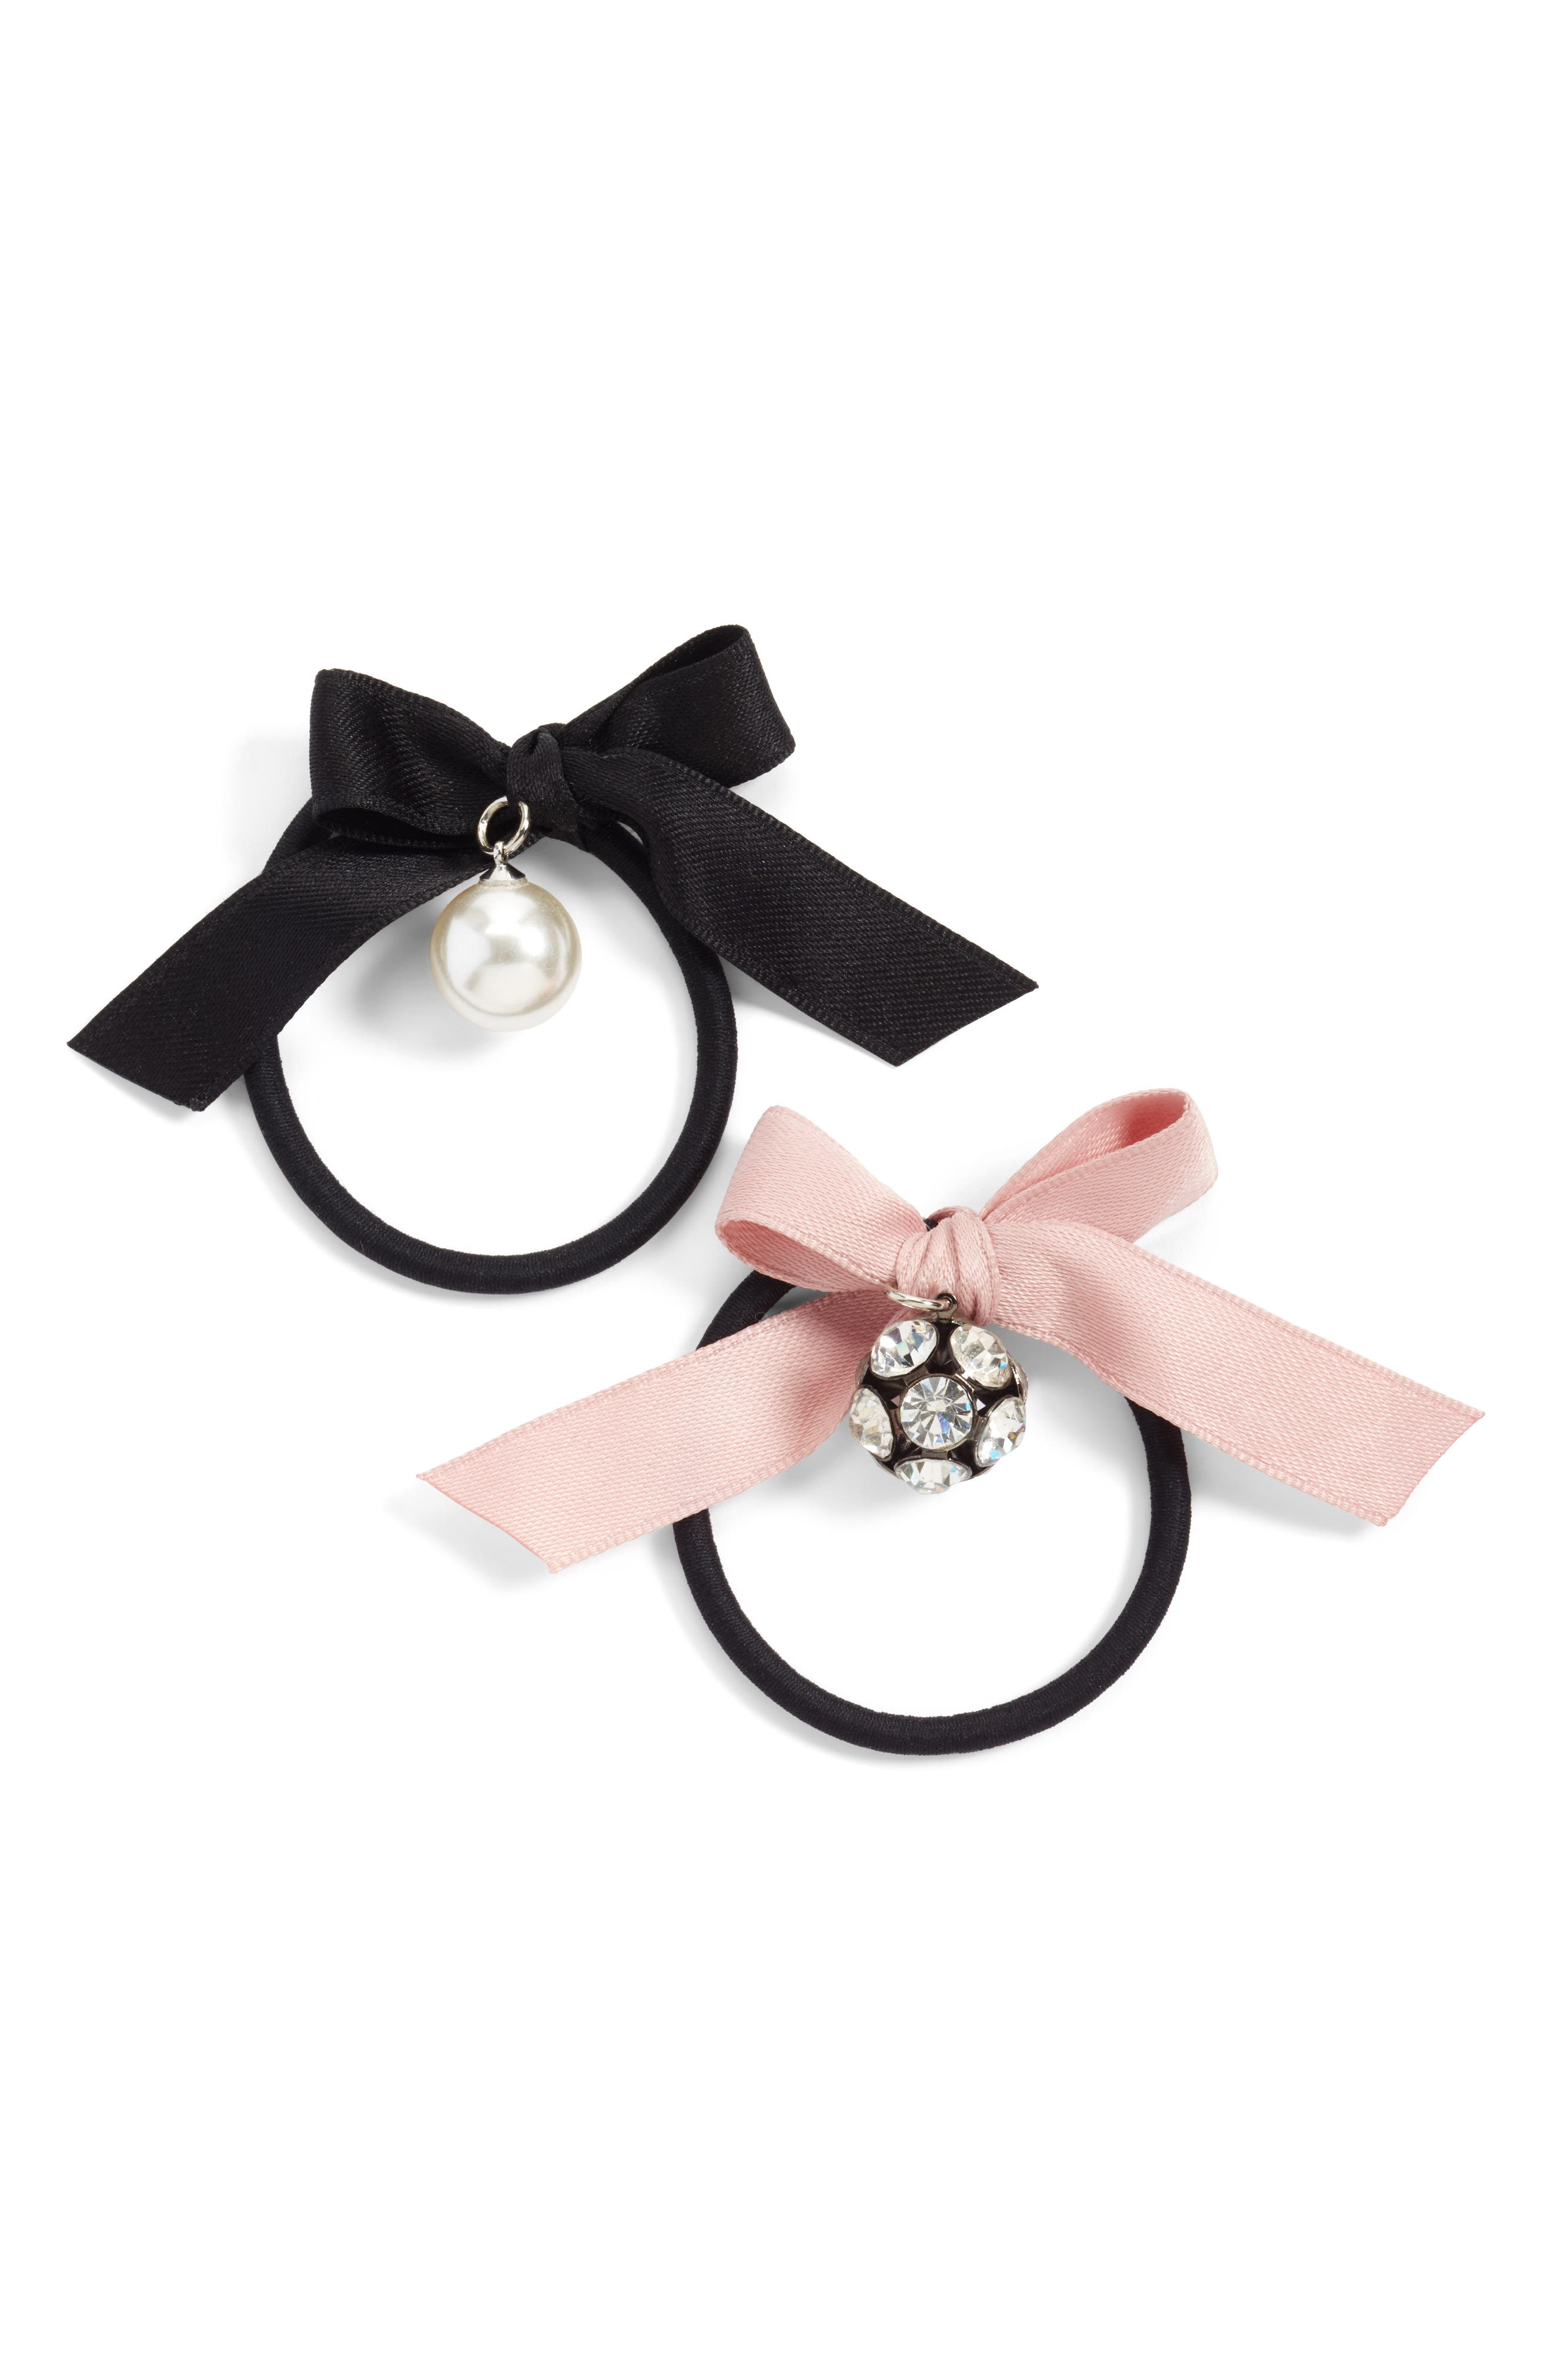 2-Pack Bow with Imitation Pearl & Crystal Charm Ponytail Holders,                             Main thumbnail 1, color,                             005